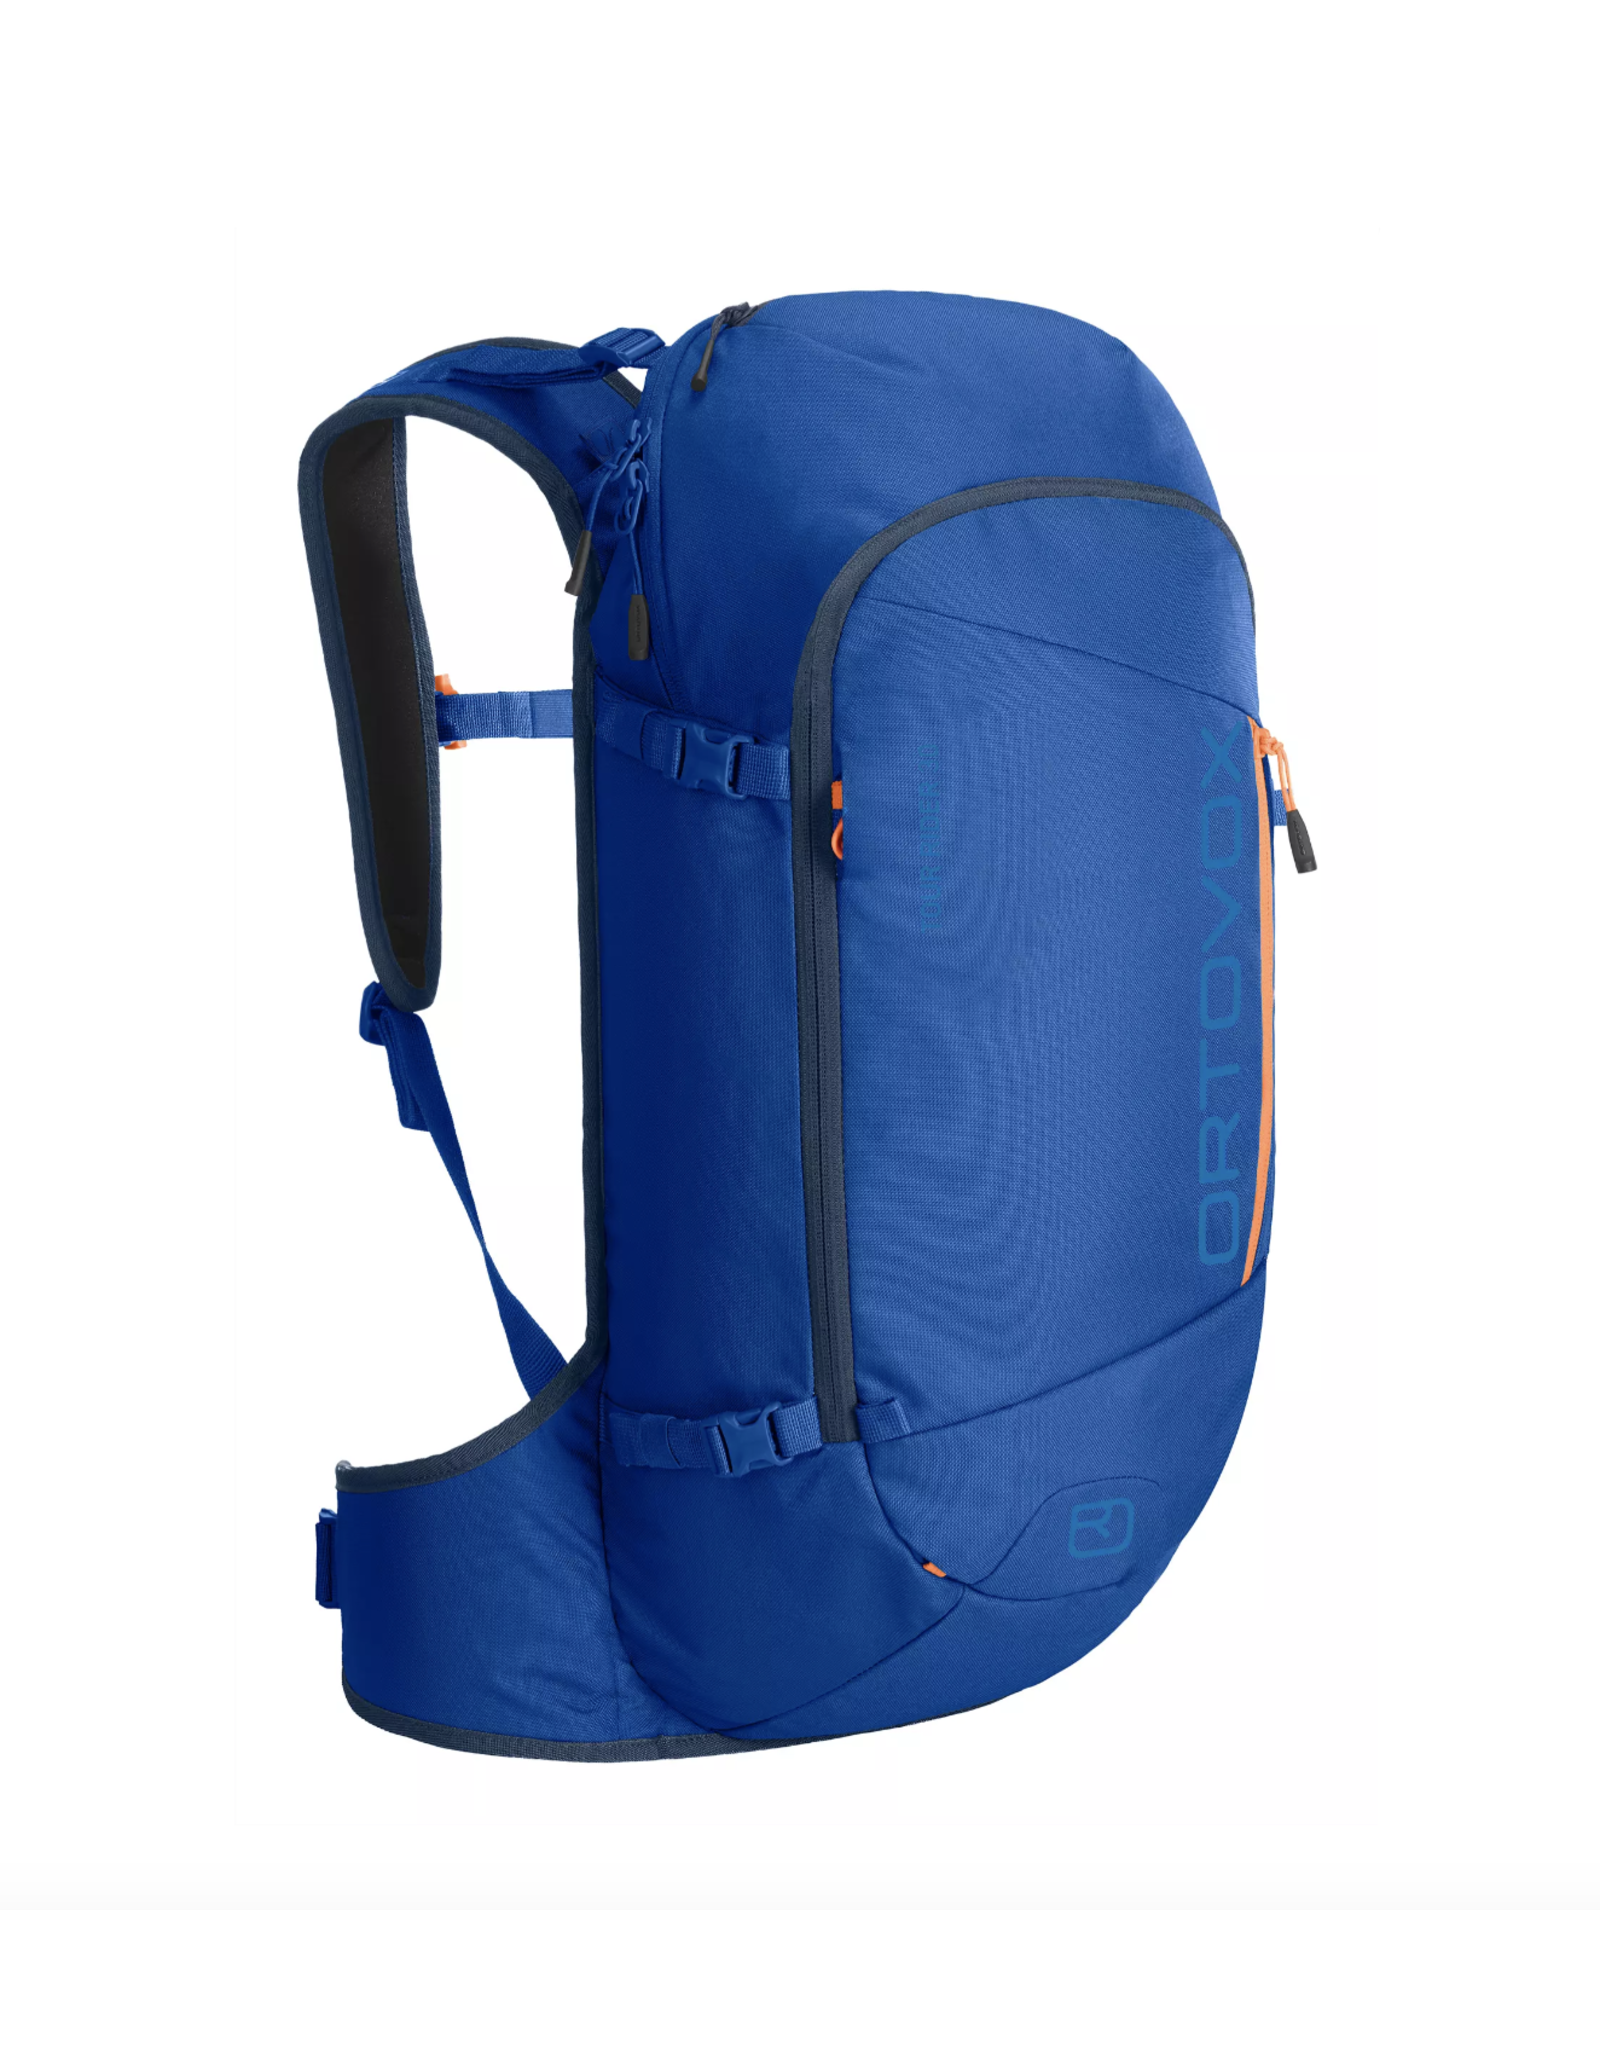 Tour Rider 30 Pack Just Blue 30L